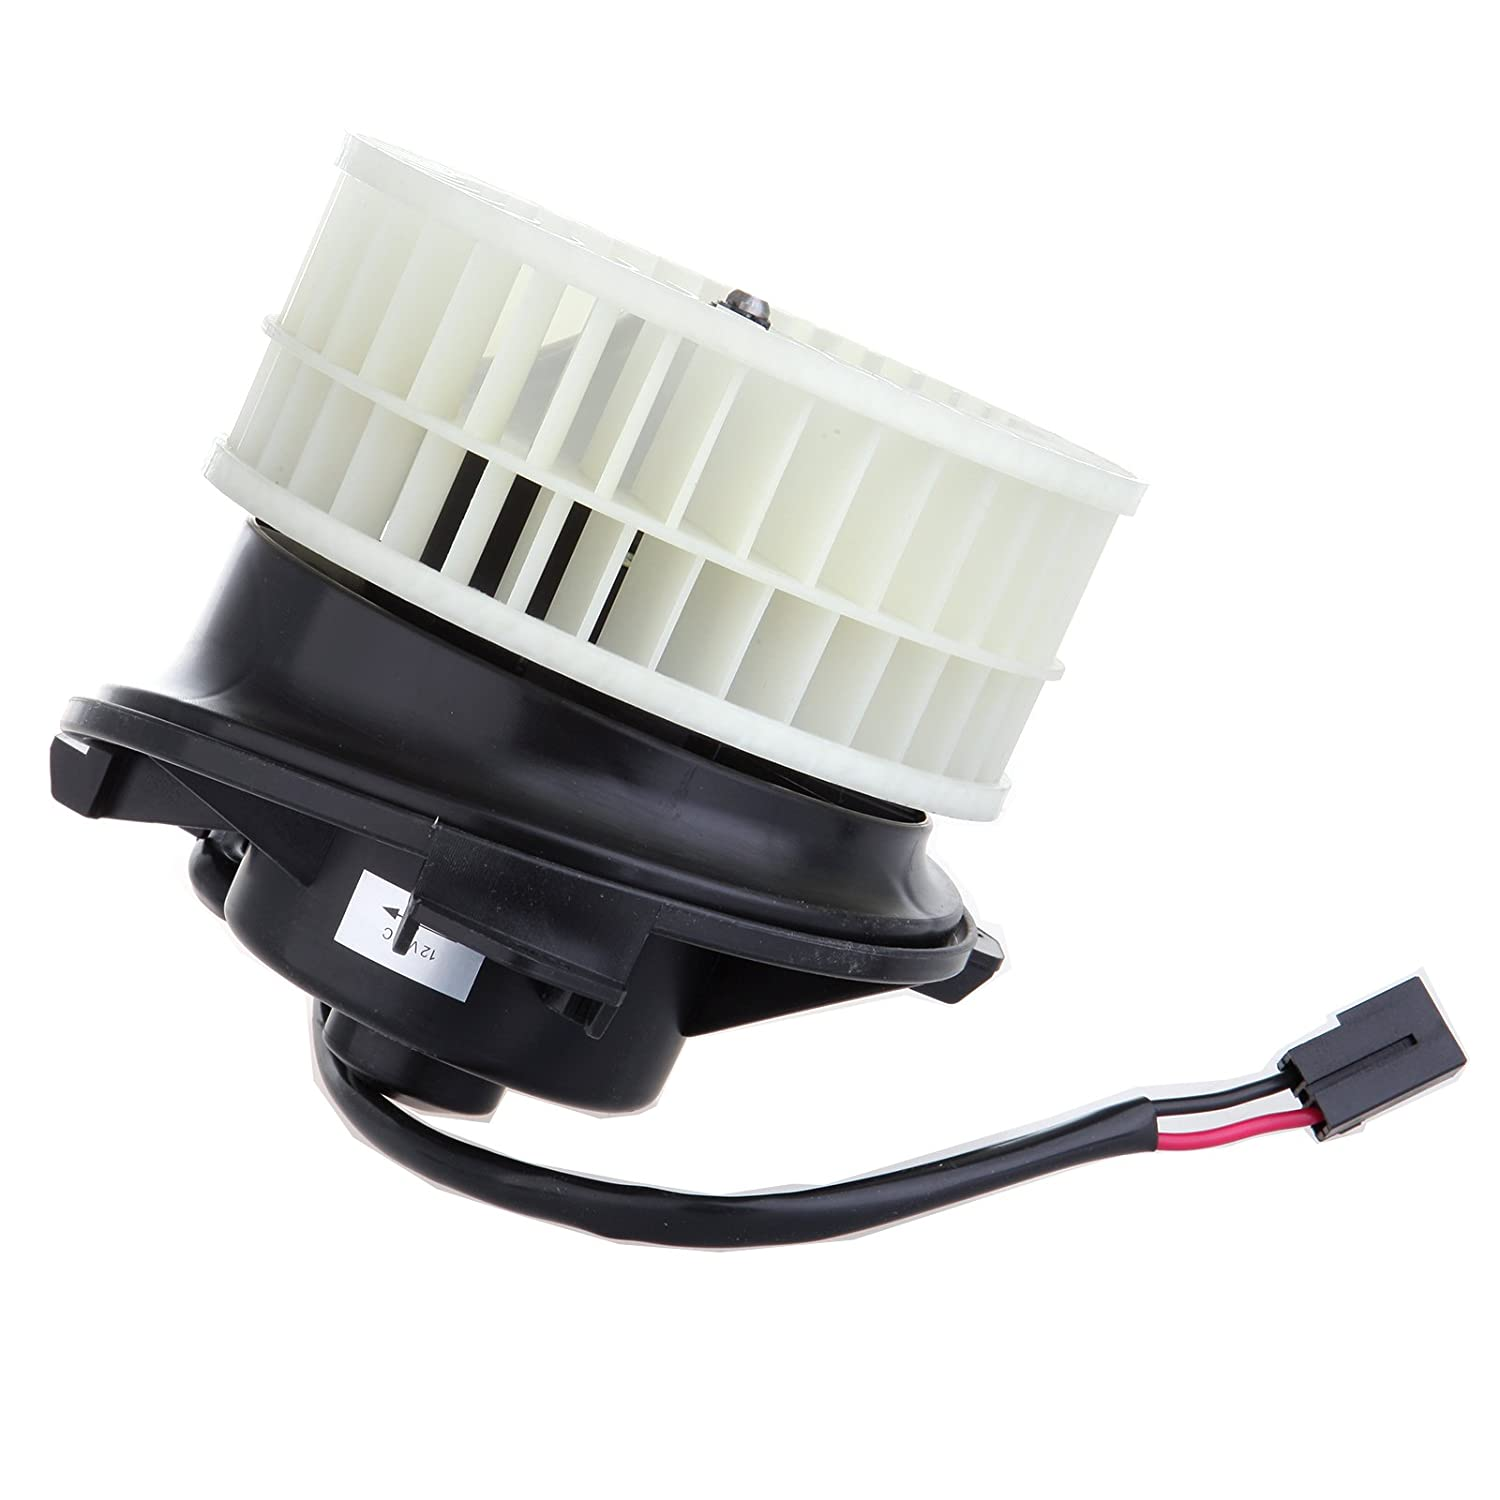 HVAC plastic Heater Blower Motor w/Fan Cage ECCPP Replacement fit for 2004-2008 Chrysler Pacifica 2001-2007 Chrysler Town & Country 2001-2007 Dodge Caravan 2001-2007 Dodge Grand Caravan 058376-5211-0925482